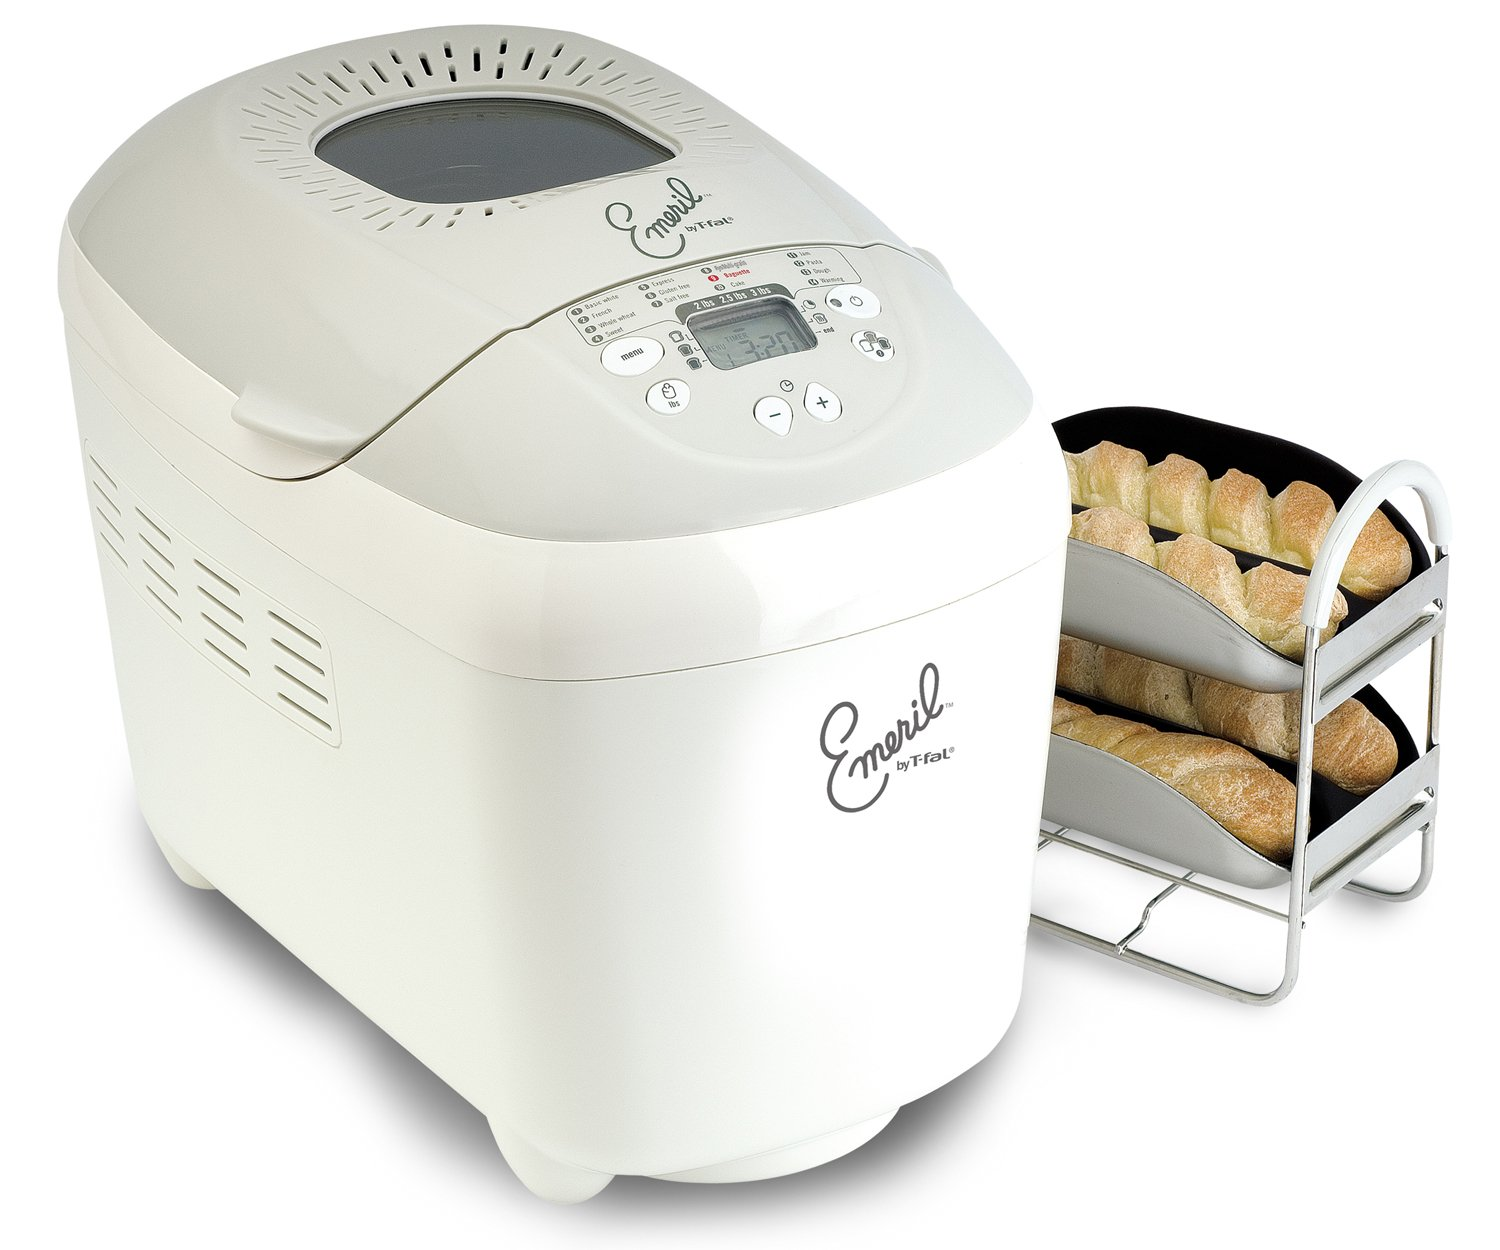 Emeril by T-fal 3-Pound Automatic Bread Machine